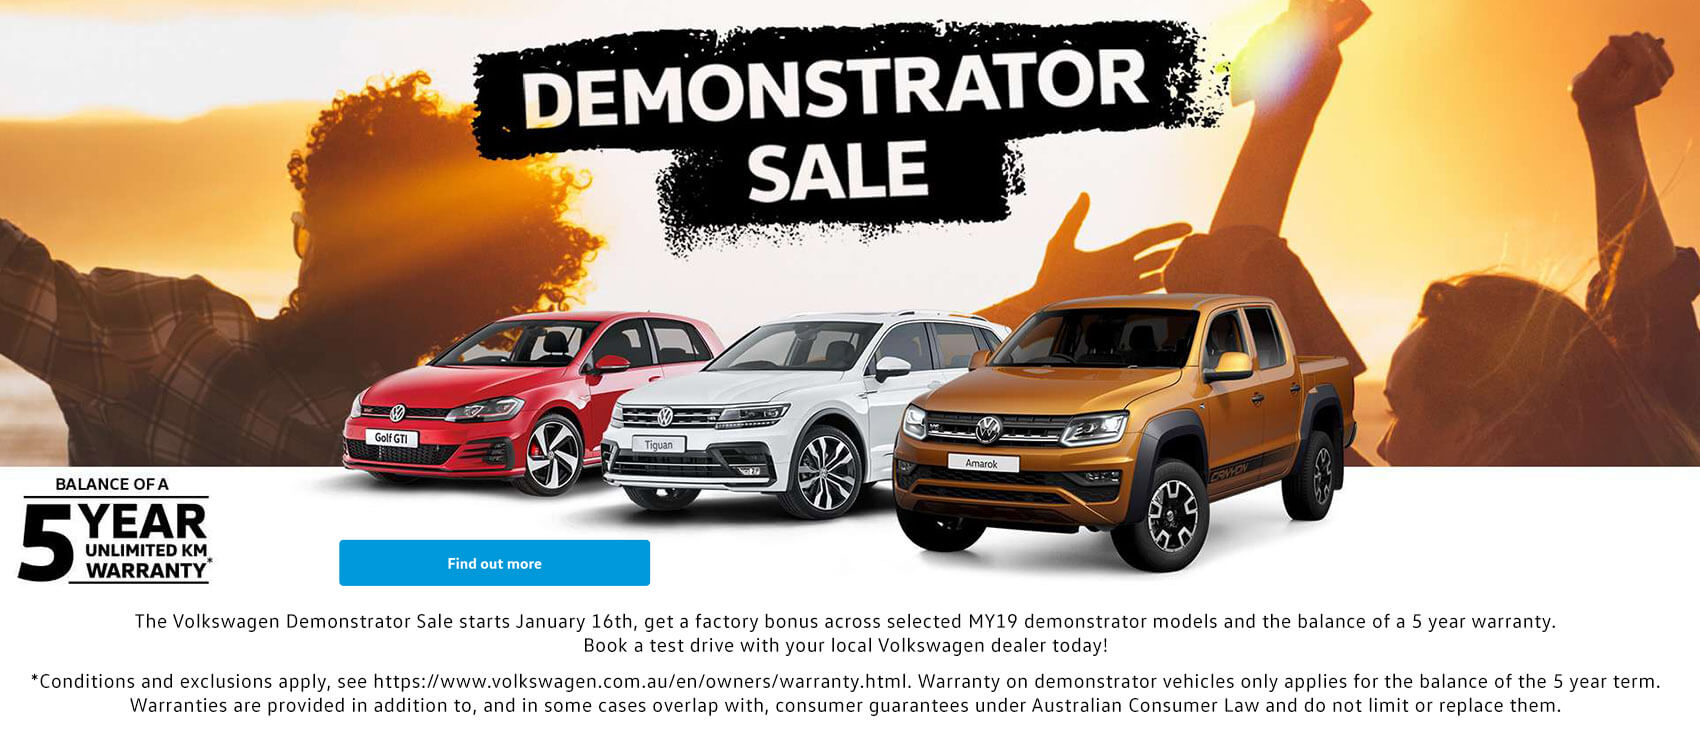 The Volkswagen Demonstrator Sale starts January 16th, get a factory bonus across selected MY19 demonstrator models and the balance of a 5 year warranty. Book a test drive with Norris Motor Group Volkswagen